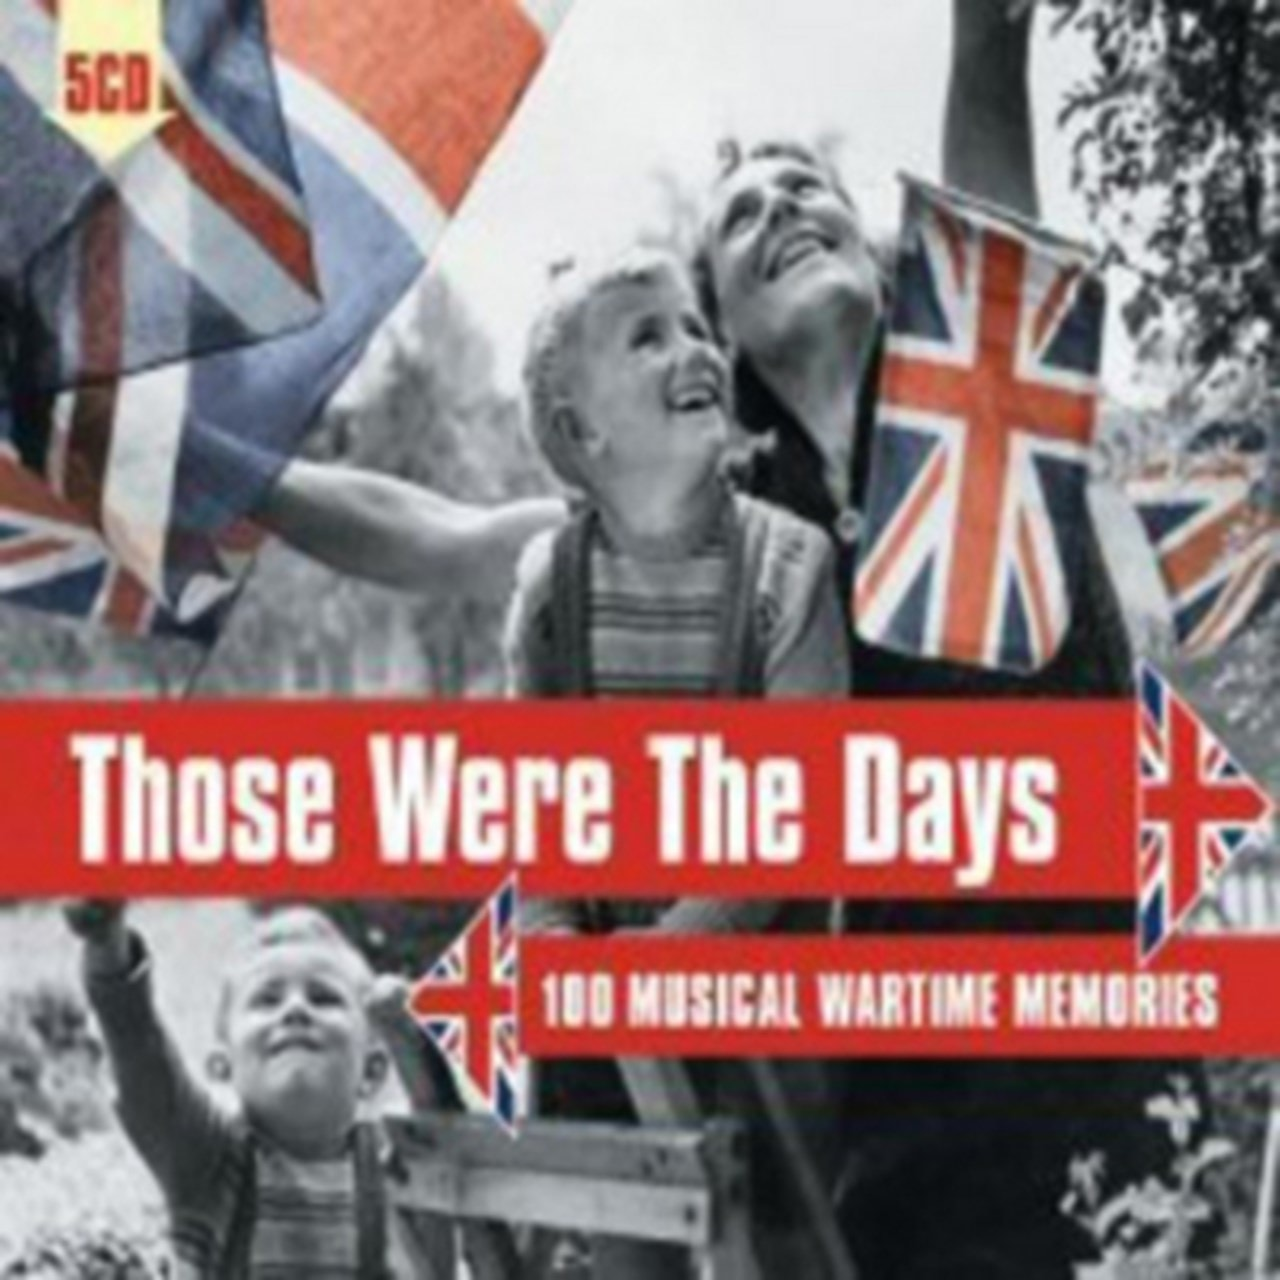 Those Were the Days: 100 Musical Wartime Memories - 1